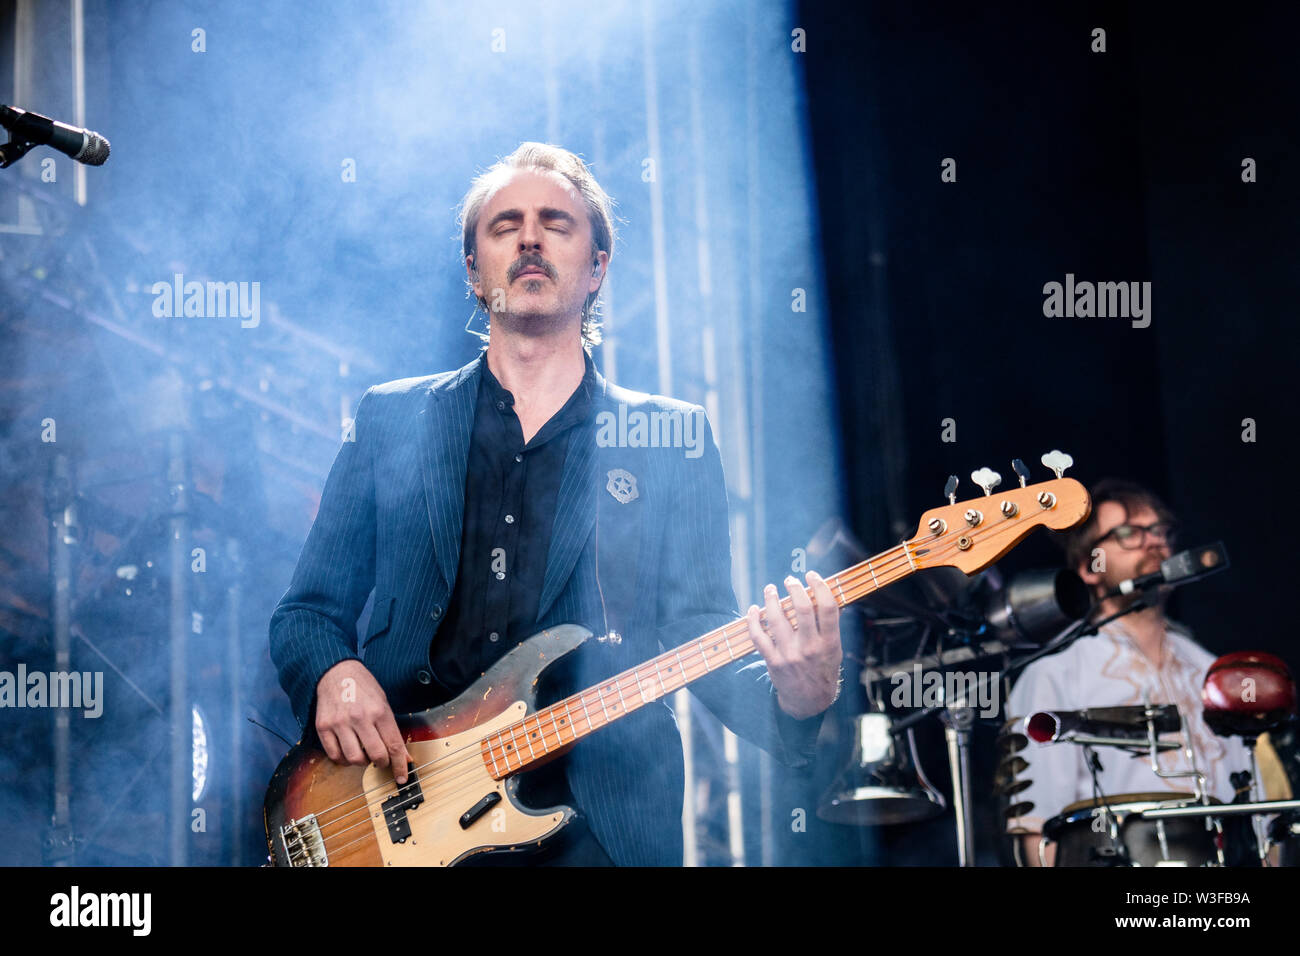 Bergen, Norway - June 13th, 2019. The Norwegian rock Madrugada performs a live concert during the Norwegian music festival Bergenfest 2019 in Bergen. Here bass player Frode Jacobsen is seen live on stage. (Photo credit: Gonzales Photo - Jarle H. Moe). - Stock Image